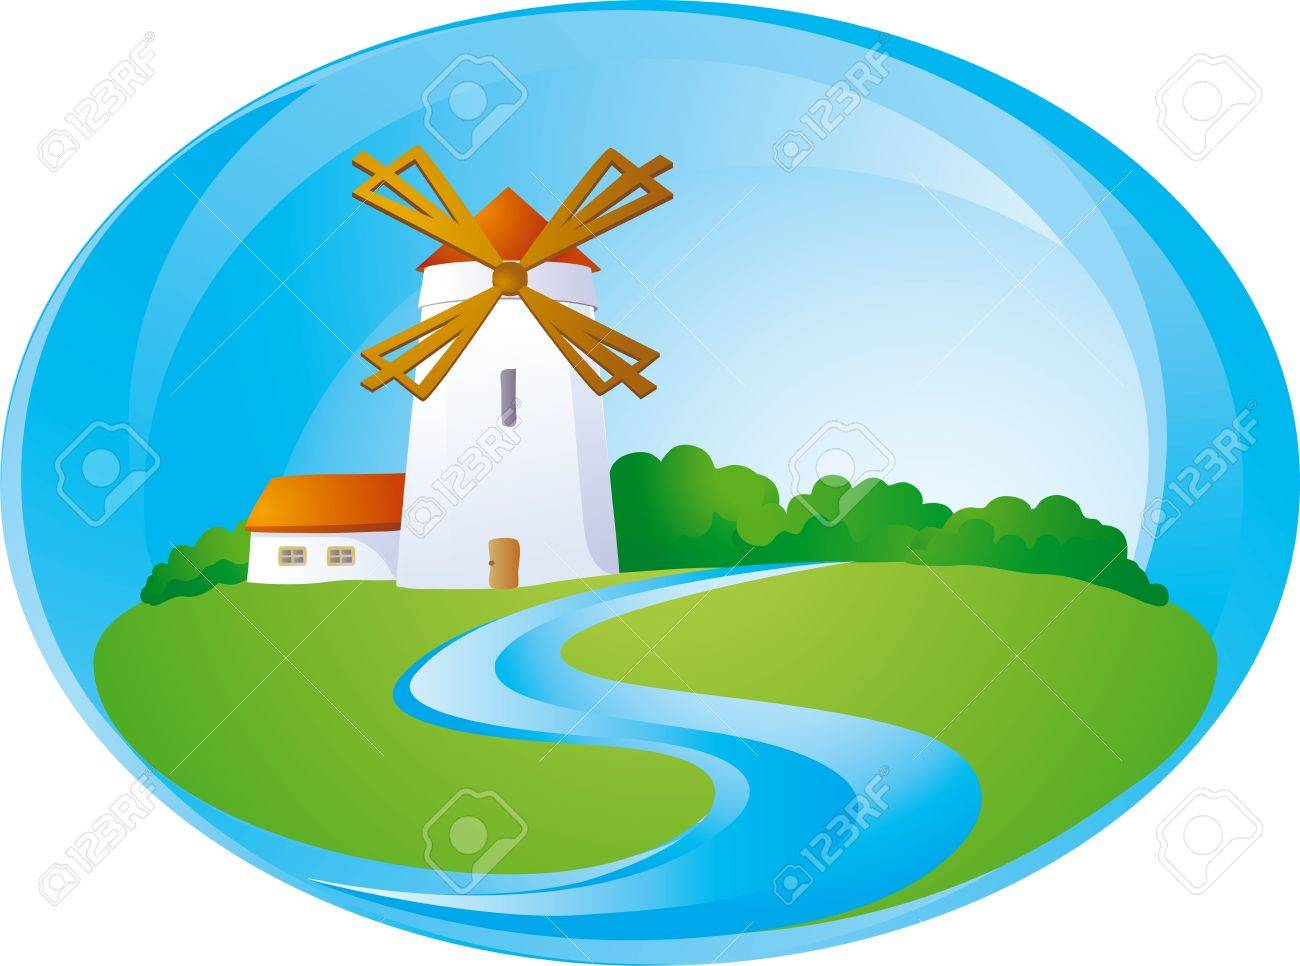 Rural background with windmill Stock Vector - 12442277